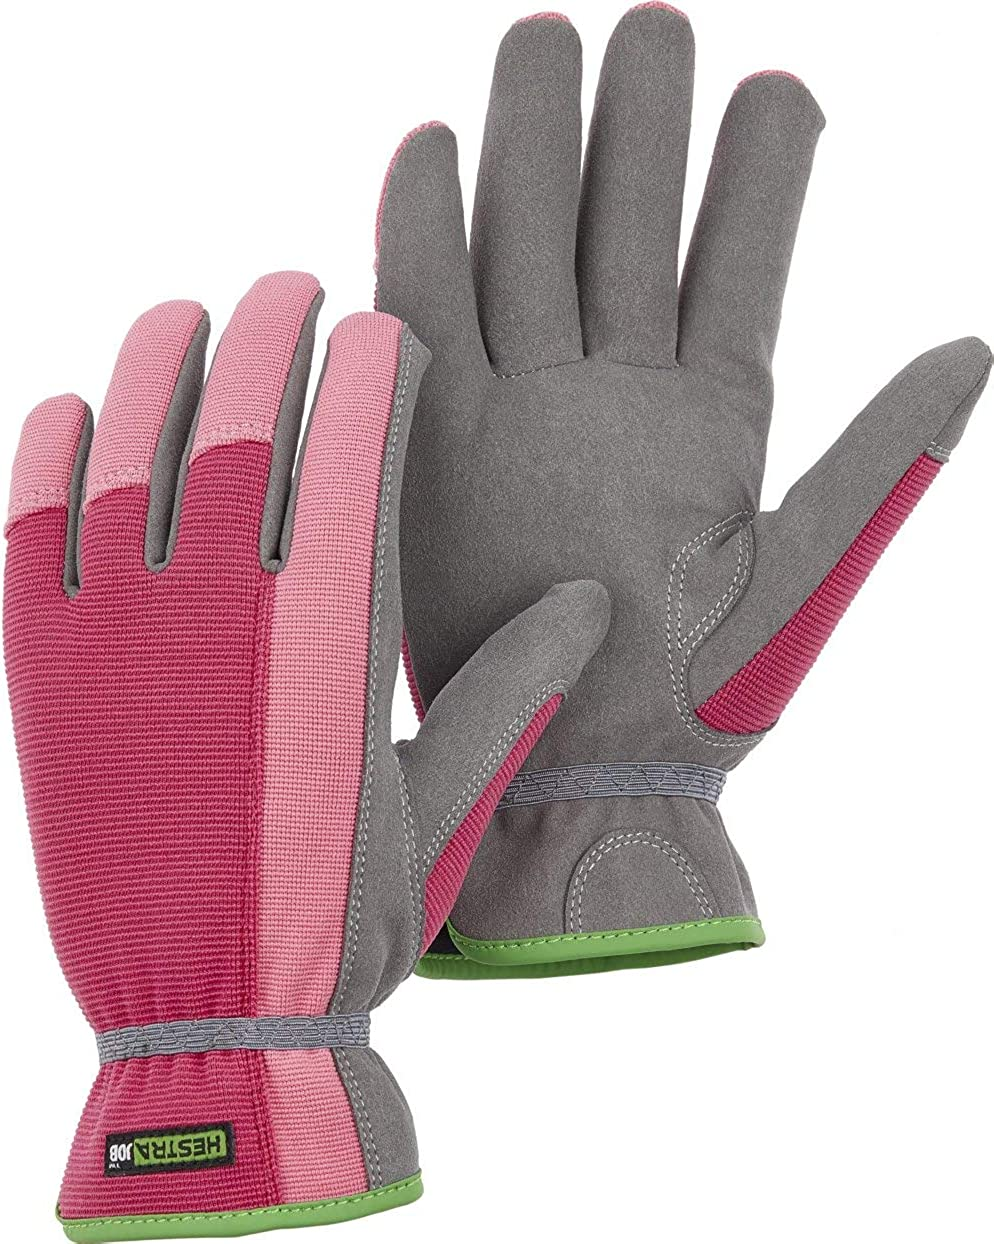 Hestra Garden Robin Durable Adult Work and Gardening Gloves   Washable Gloves for Gardening, Yard Work, and Tool Use